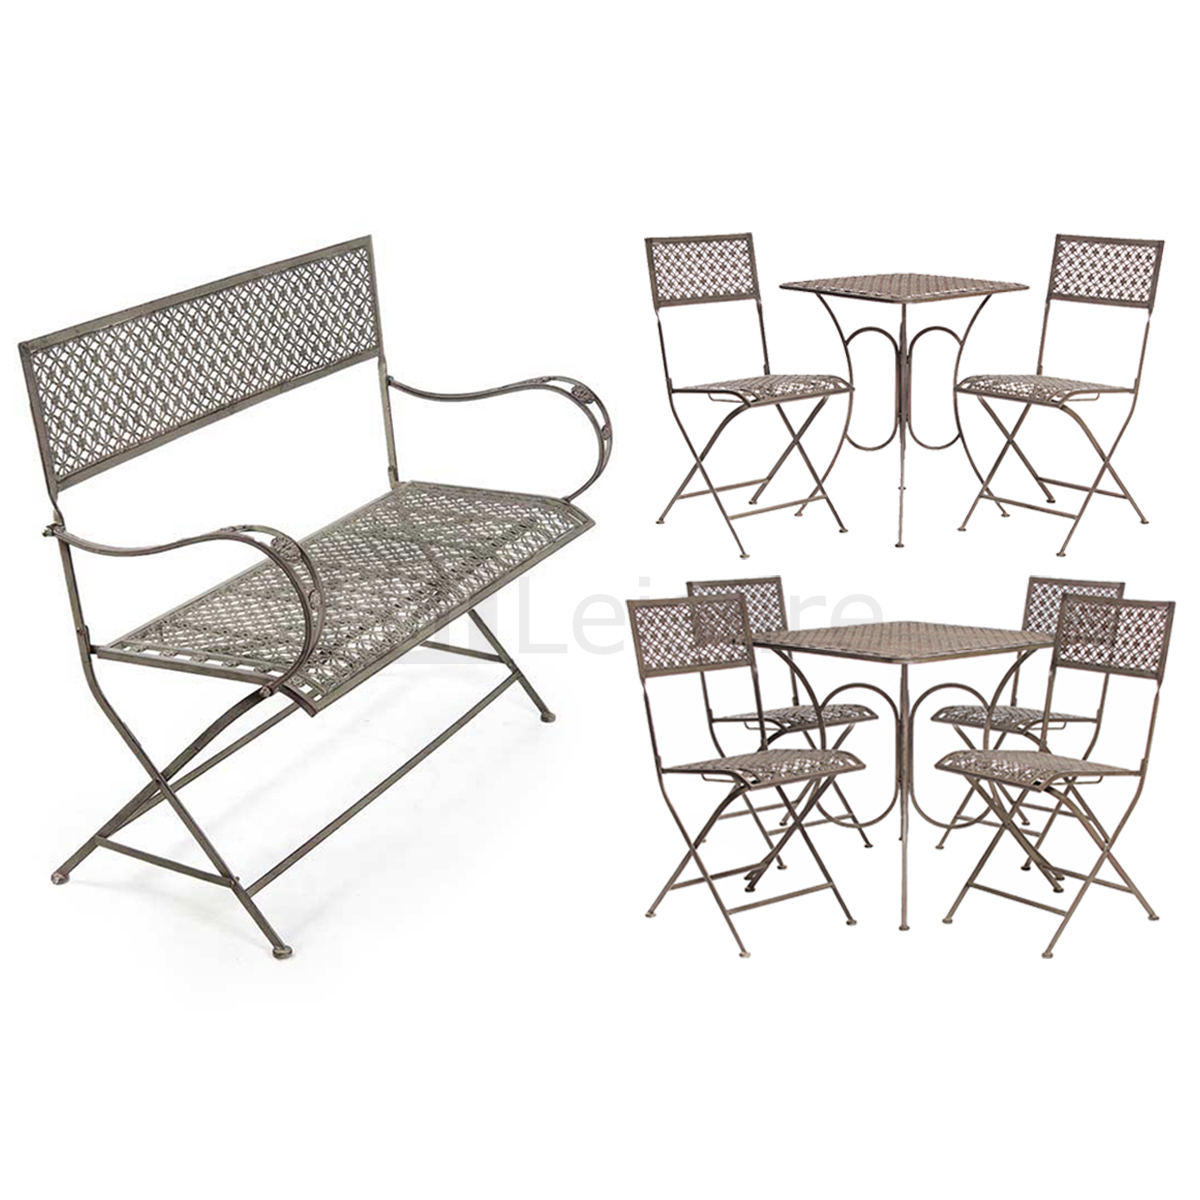 Vintage steel bistro furniture set garden table and chairs for Table and chair set